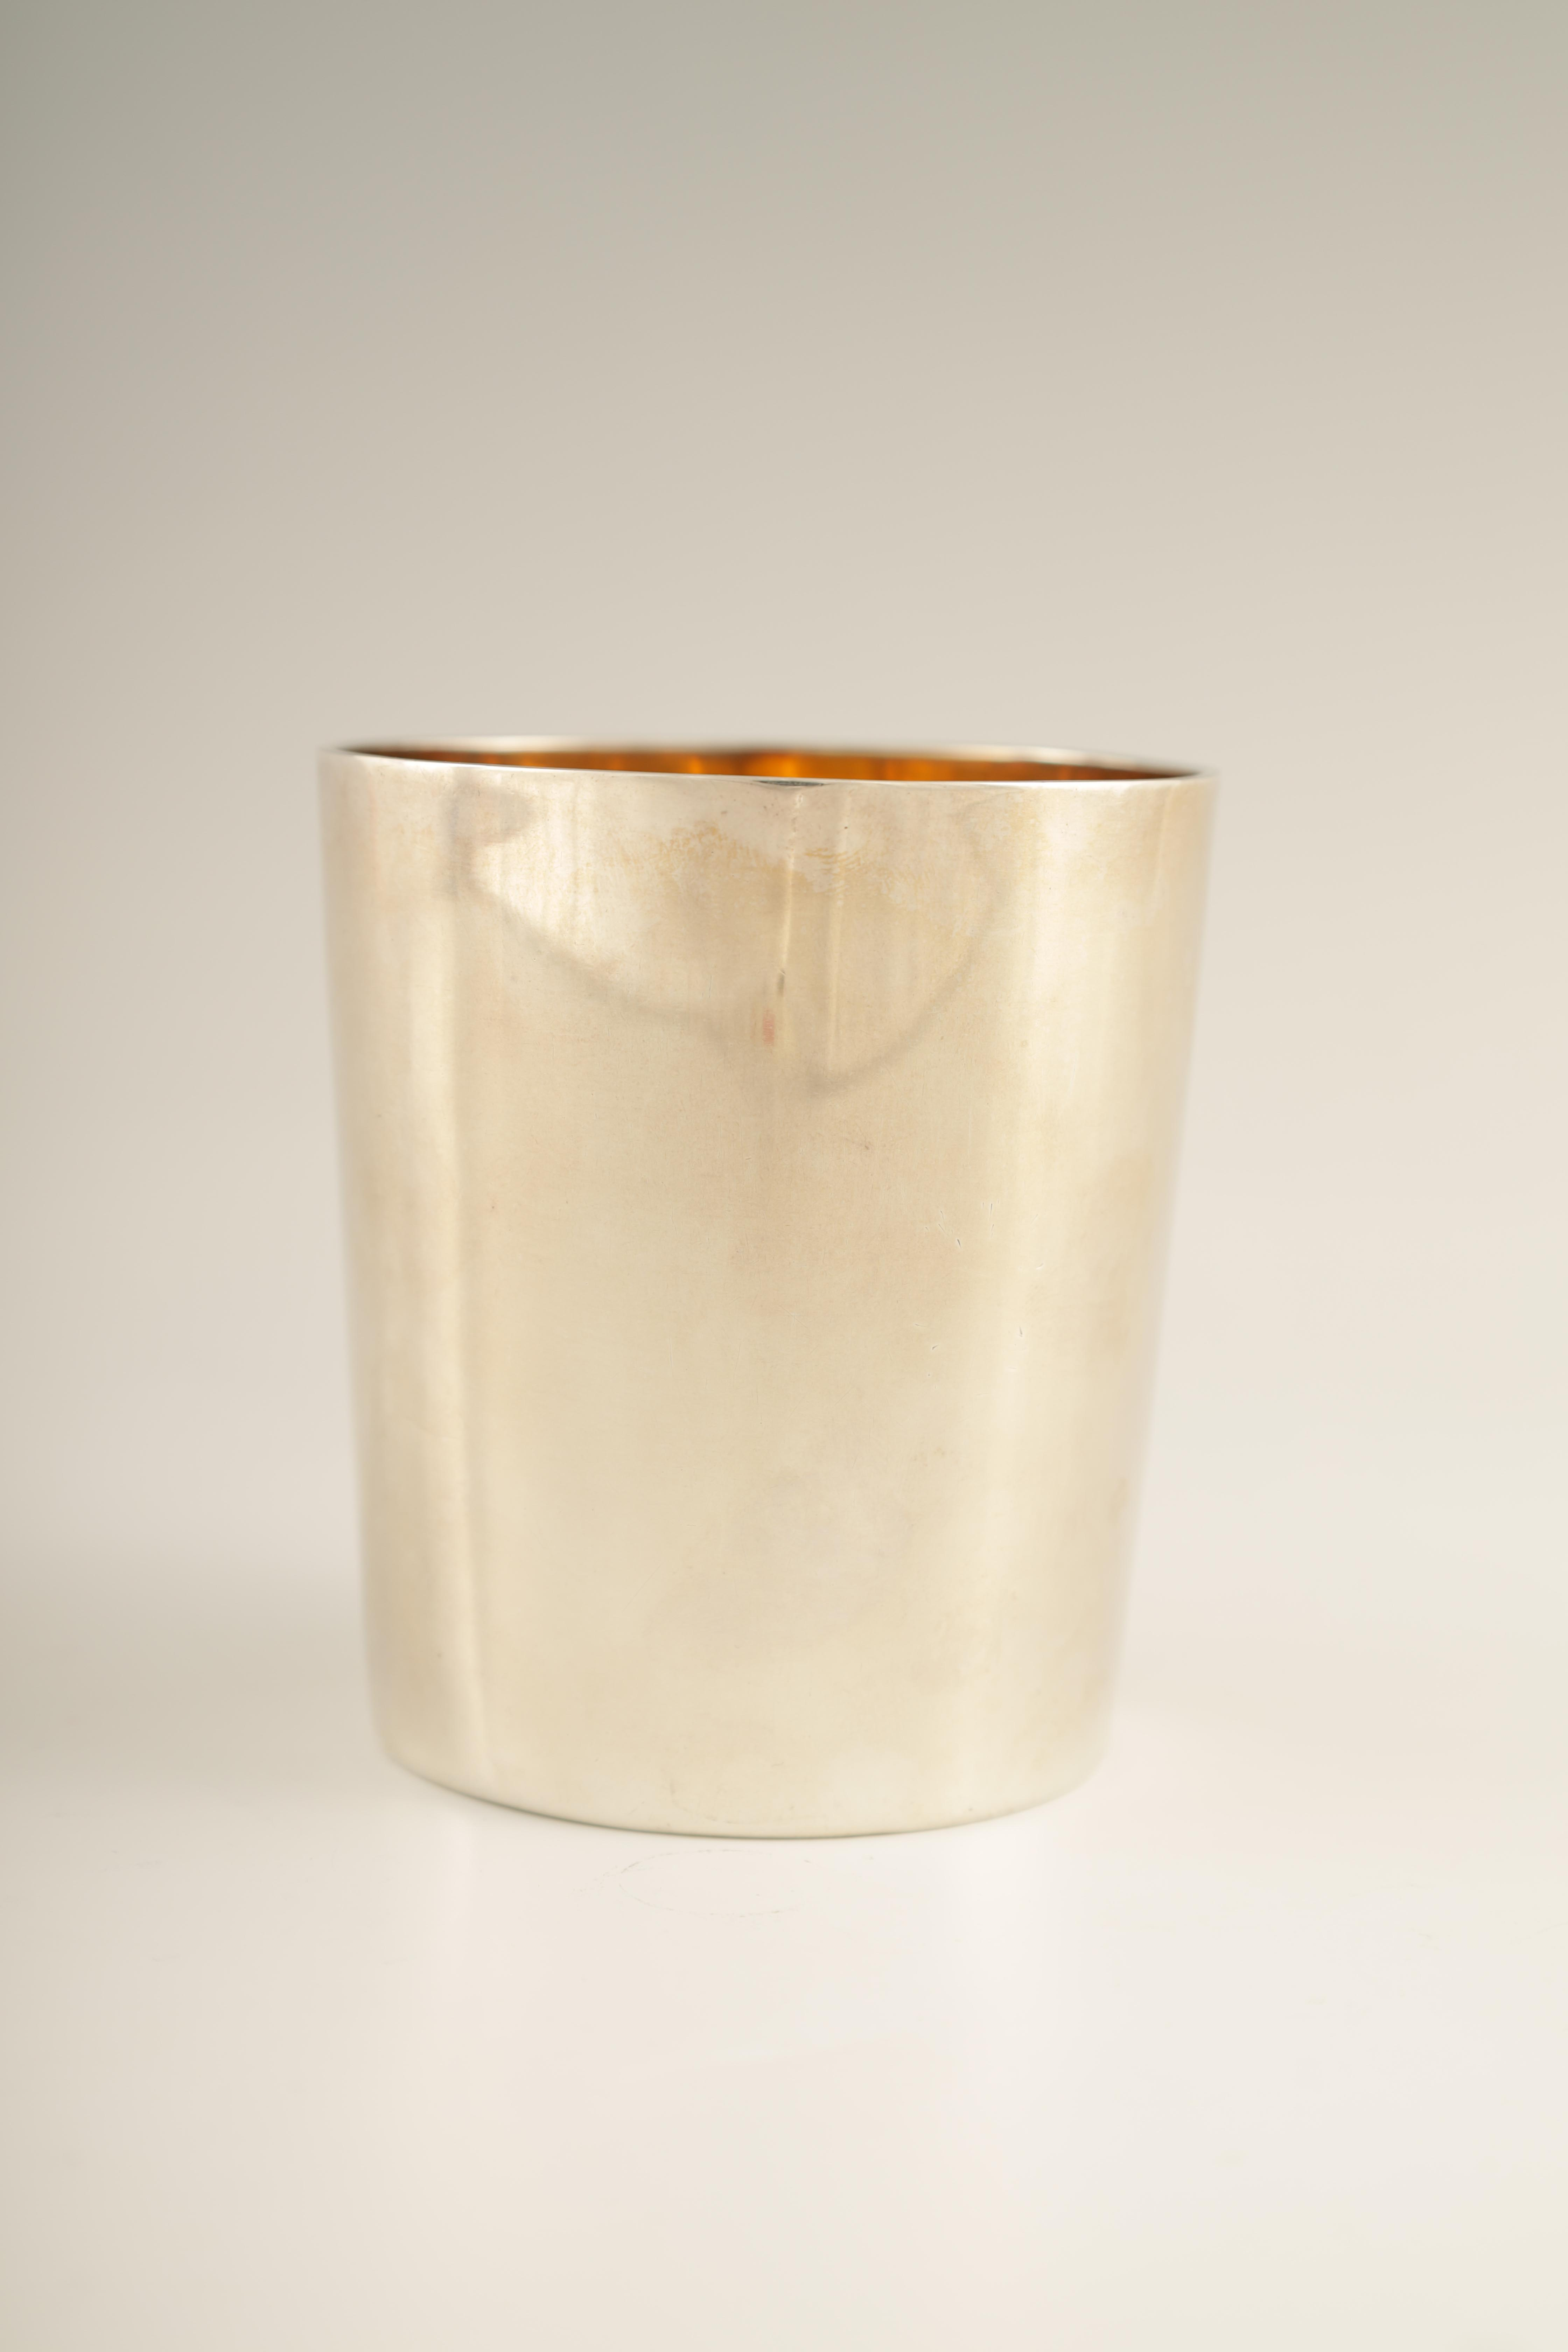 A GEORGE III SILVER BEAKER with gilt interior and coat of arms to the front, London 1802 9cm high - Image 4 of 5